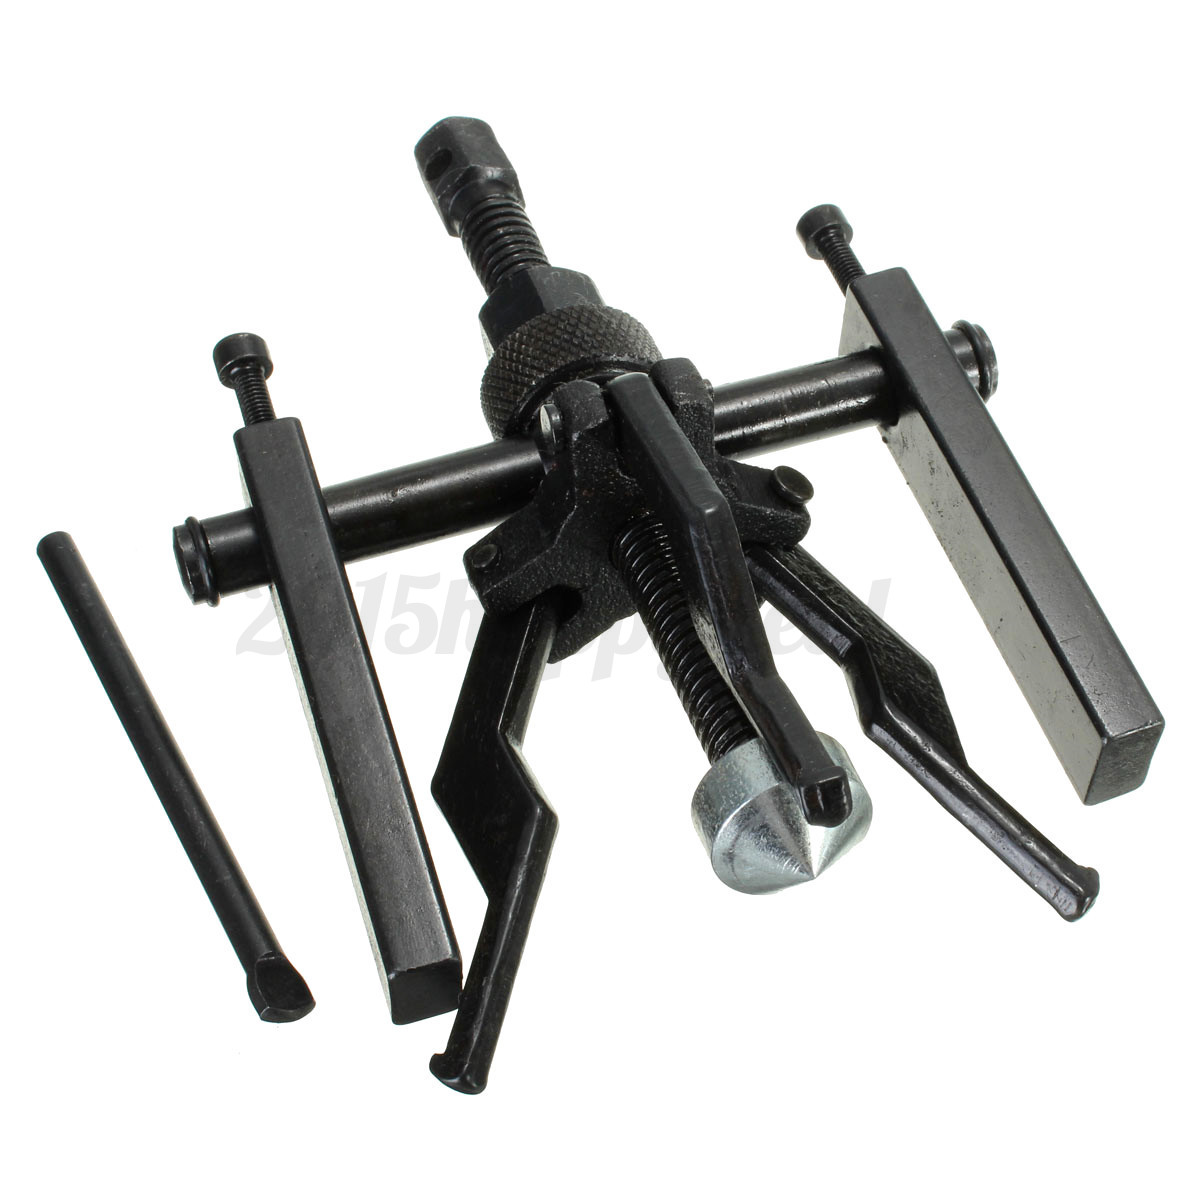 Bearing Hole Puller : Jaw inner bearing puller tool equipment hole